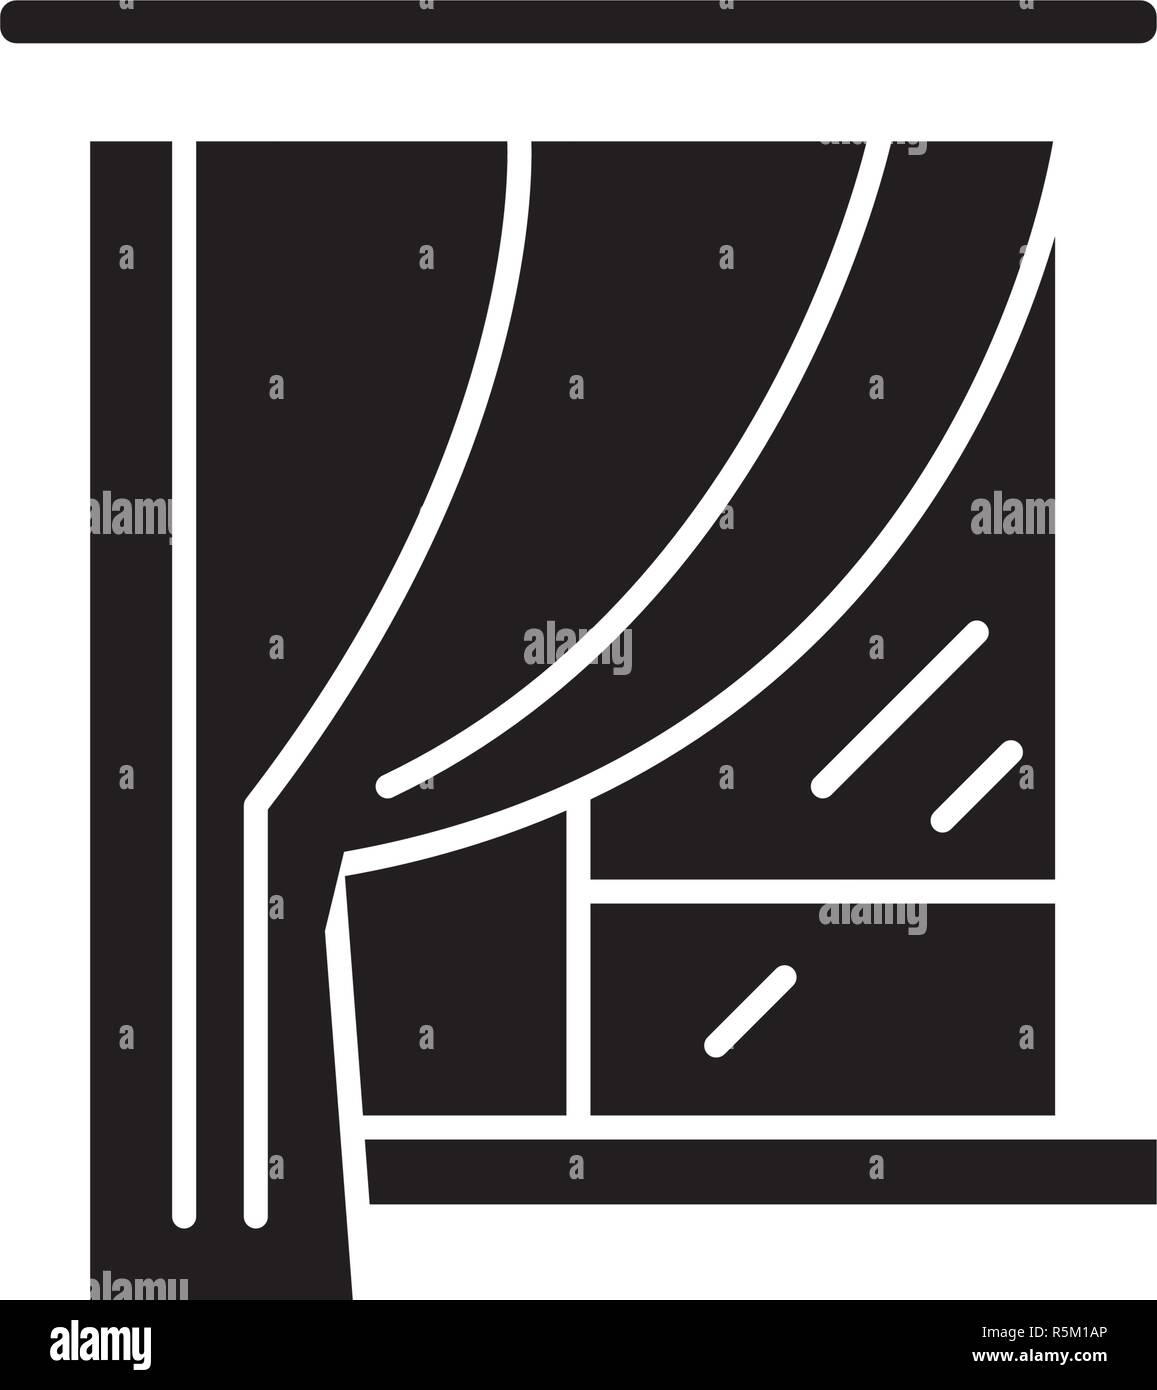 Curtains black icon, vector sign on isolated background. Curtains concept symbol, illustration  Stock Vector